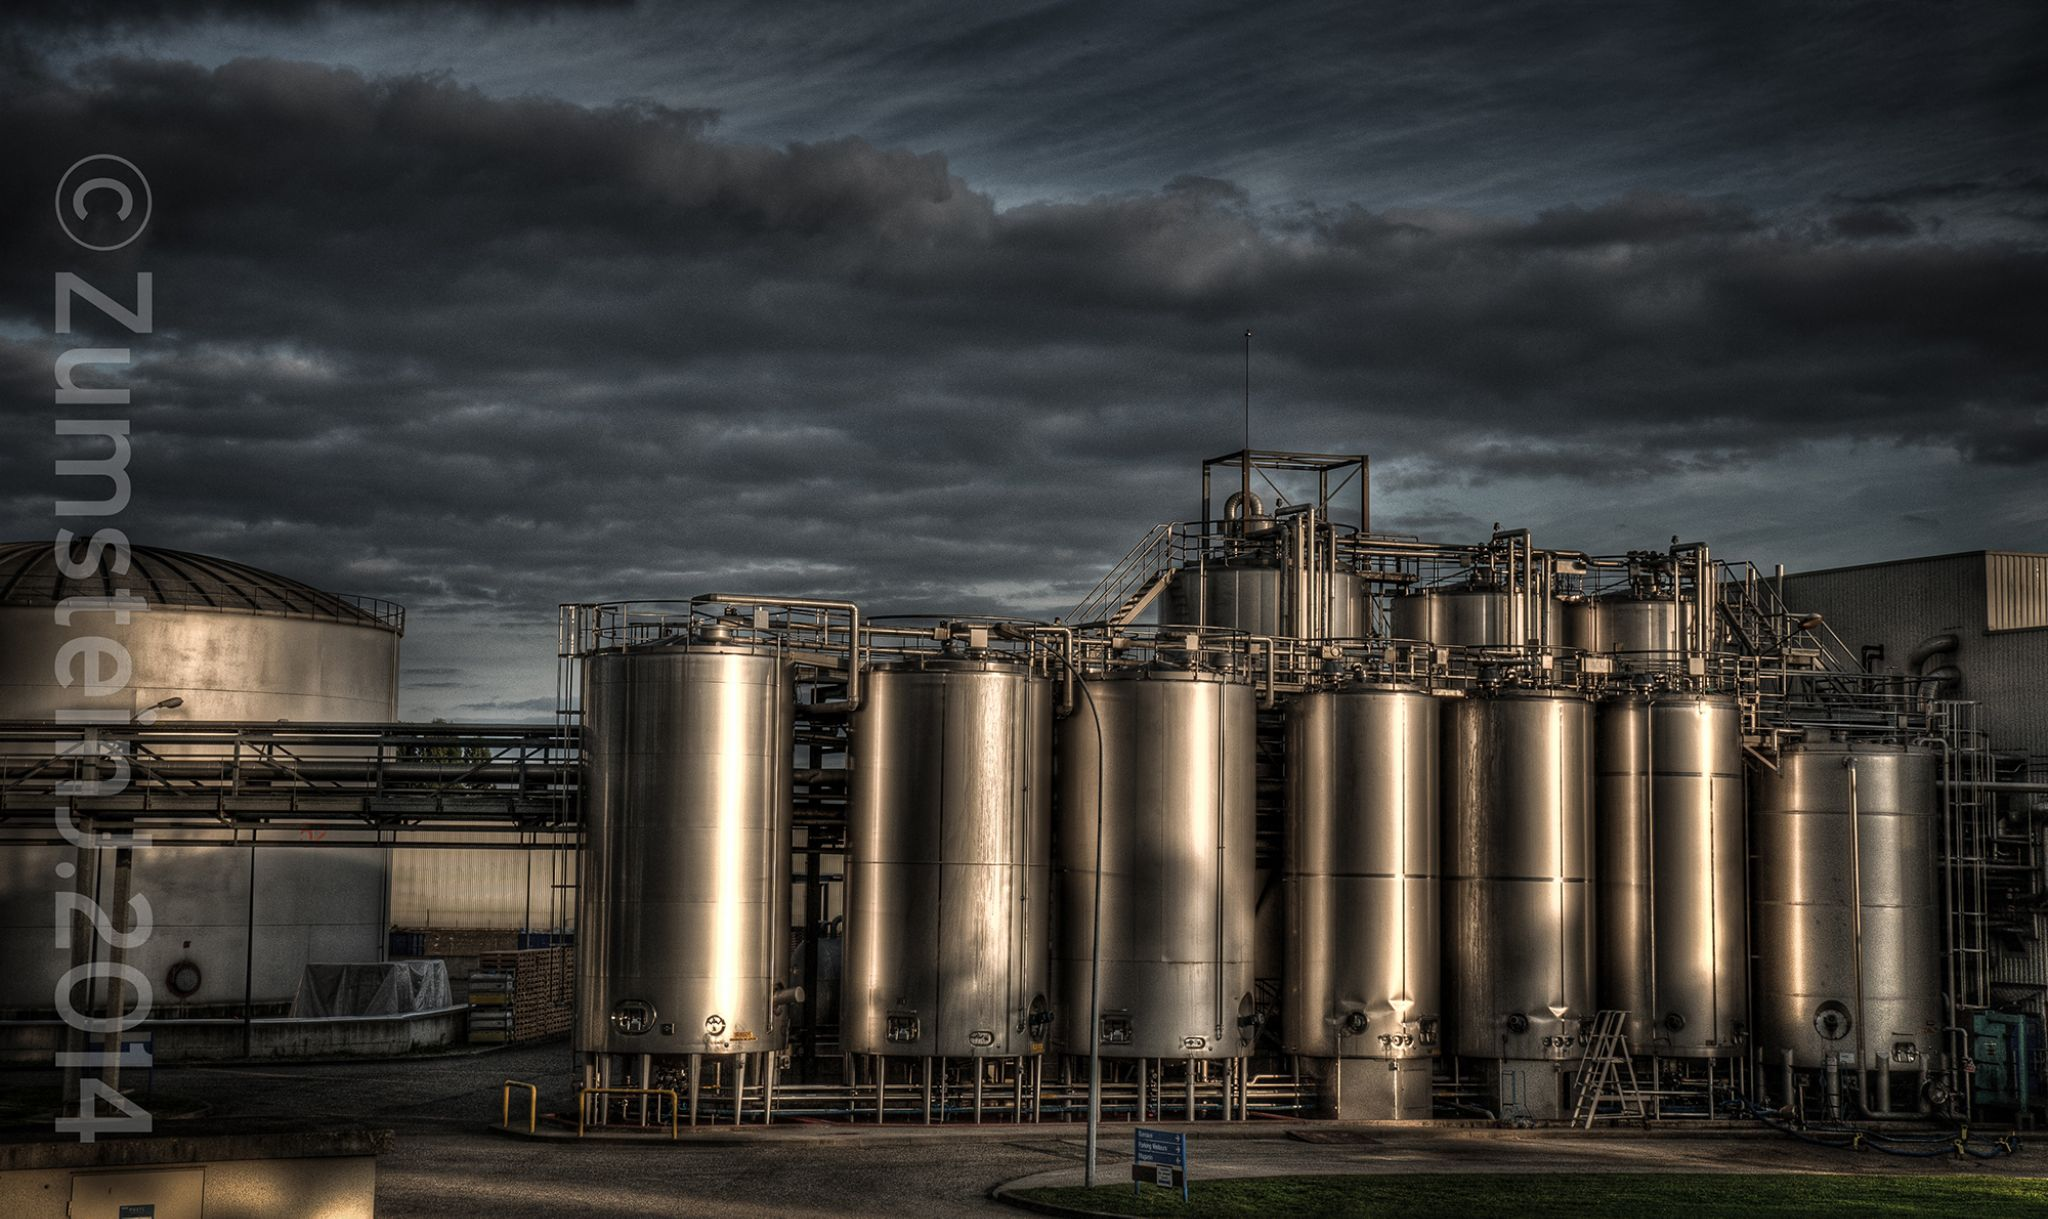 Industrial light by Zumstein Jacqui